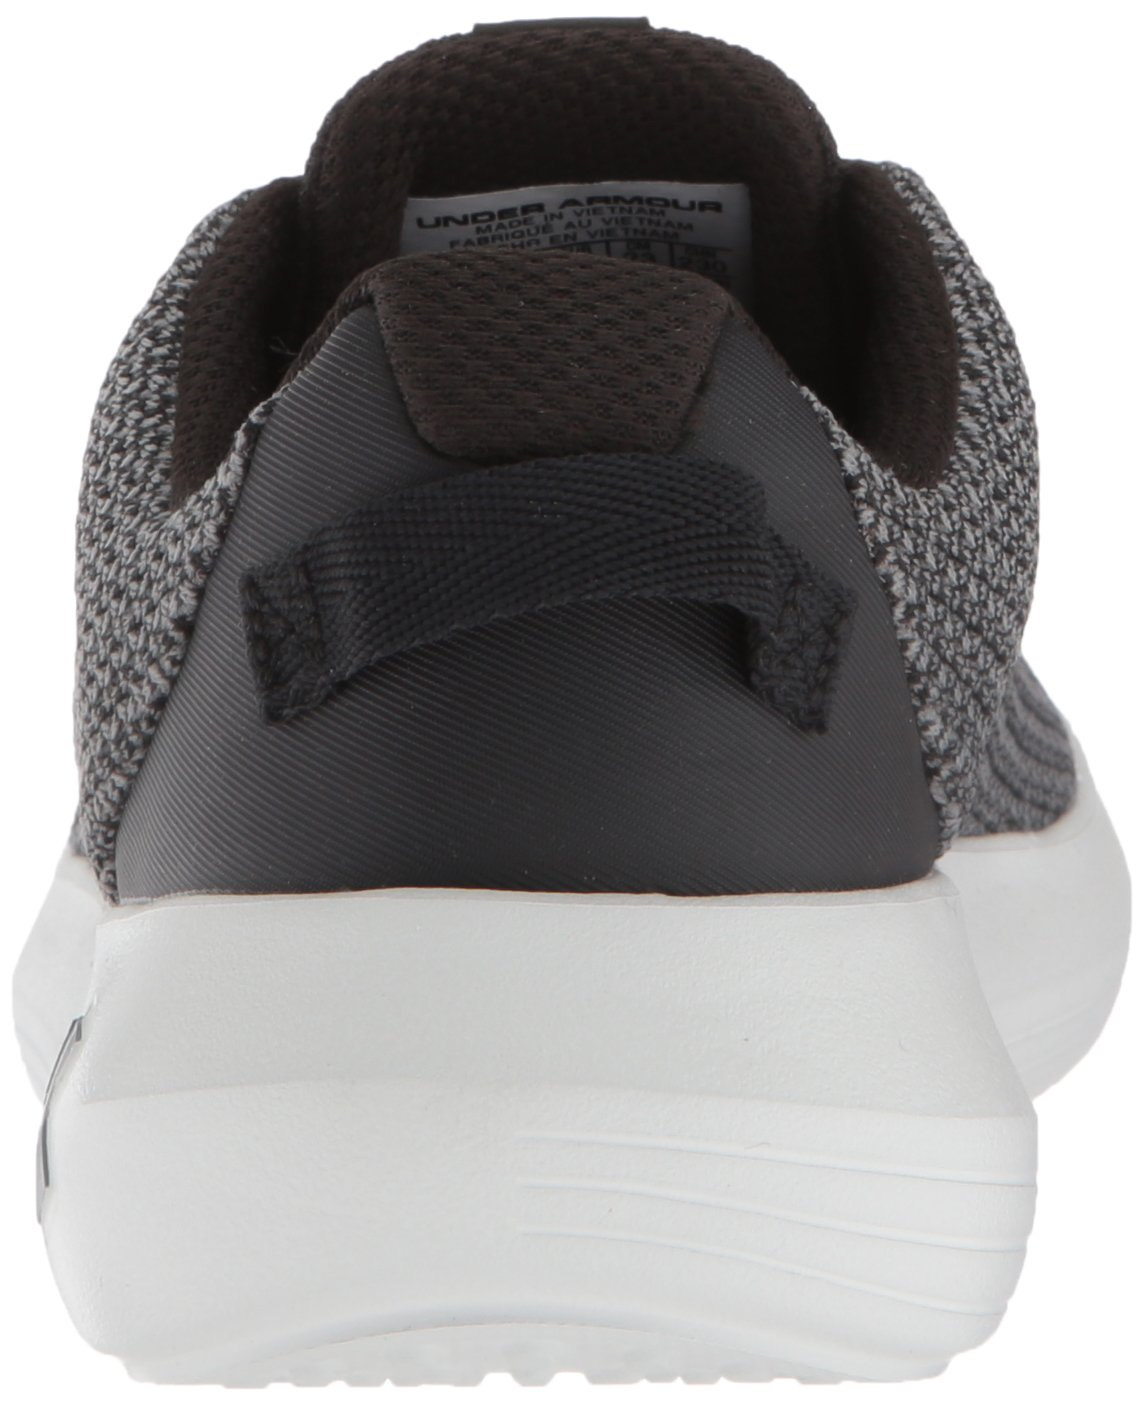 710hQgoTCGL - Under Armour Women's's Ripple Competition Running Shoes